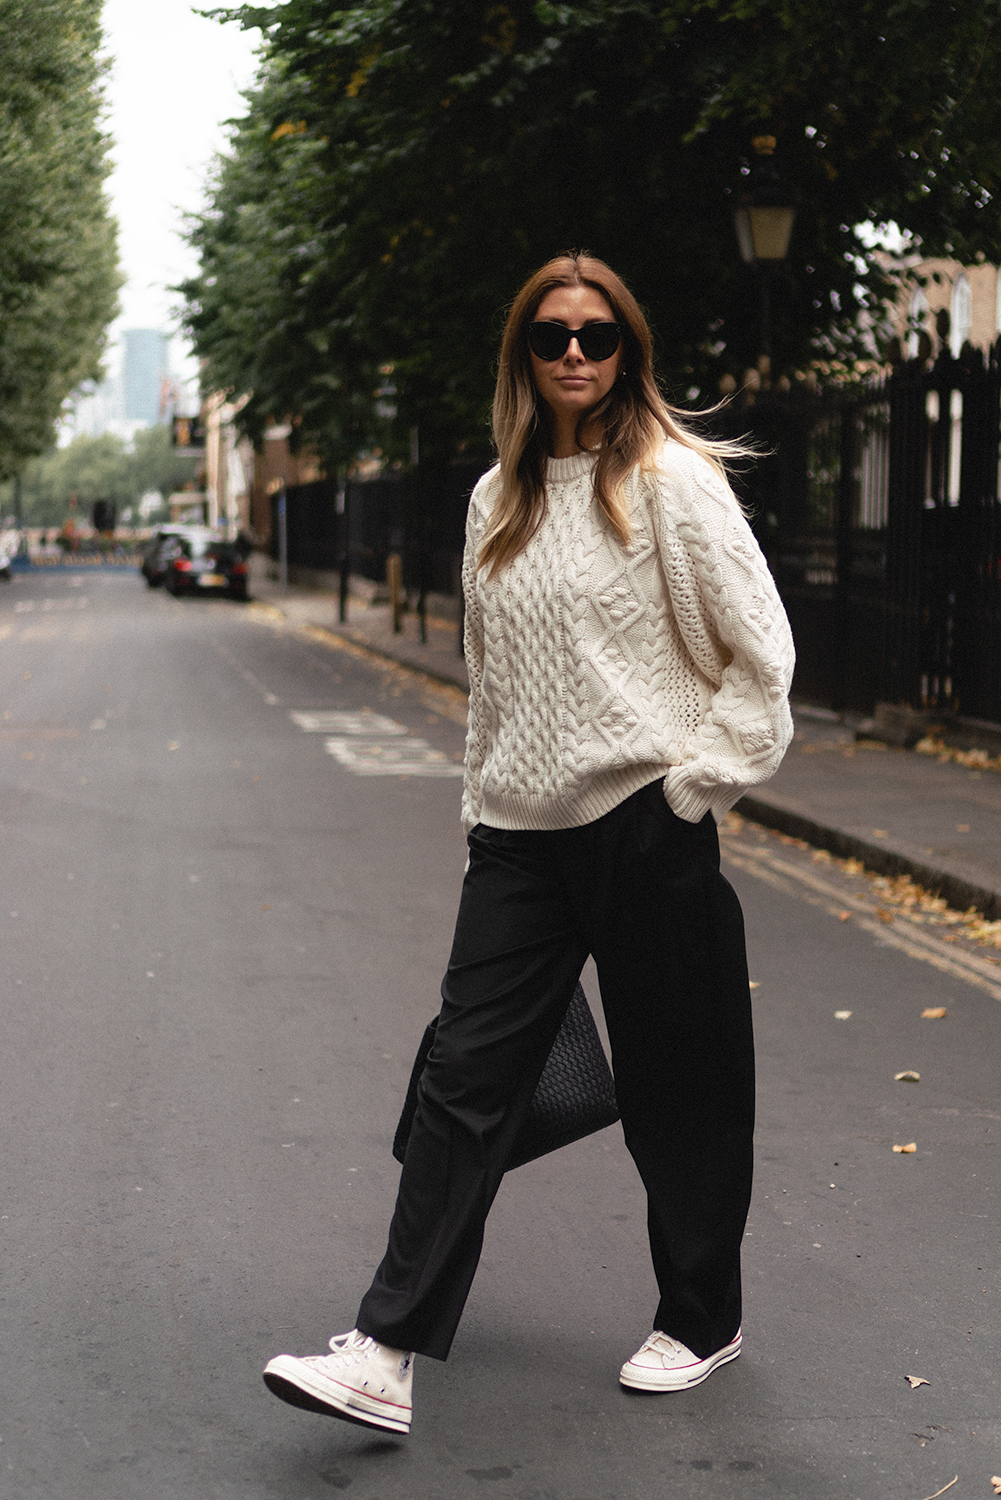 Emma Hill wears LouLou Studios cream aran knit chunky jumper, black tailored trousers, Converse high tops, Celine sunglasses, chic casual Autumn Fall outfit